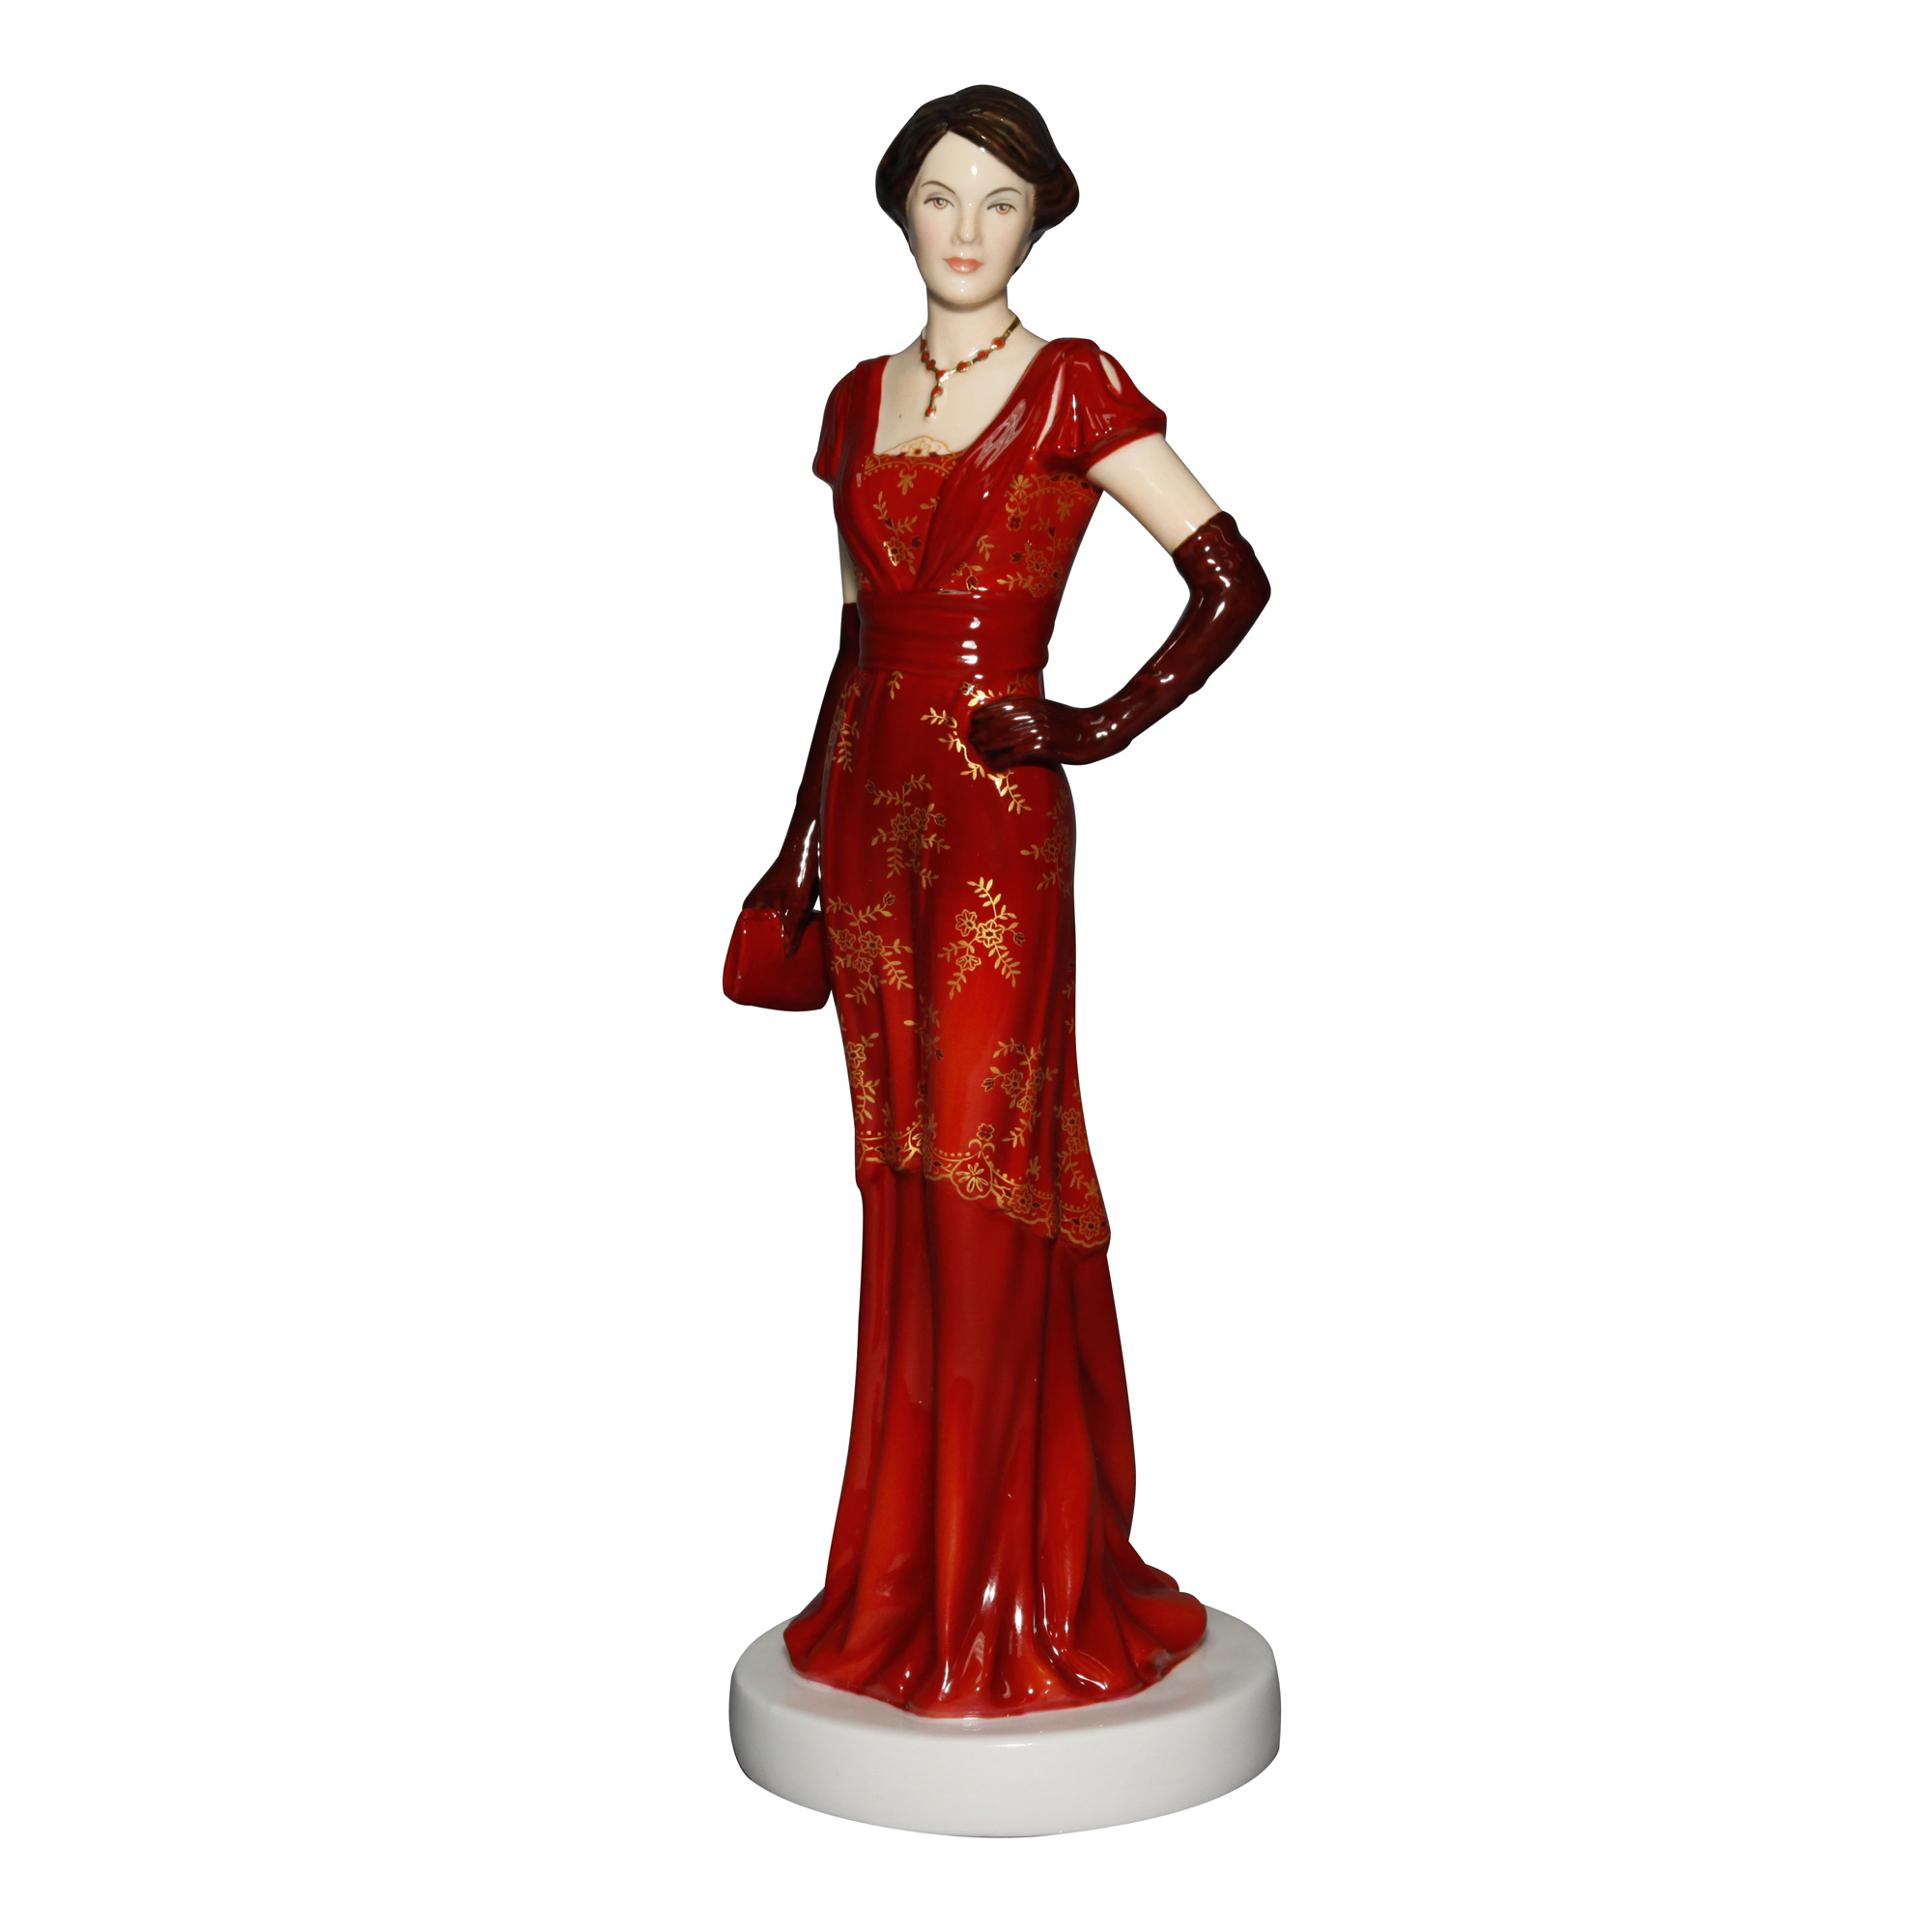 Lady Mary HN839 - Downton Abbe - Royal Doulton Figurine